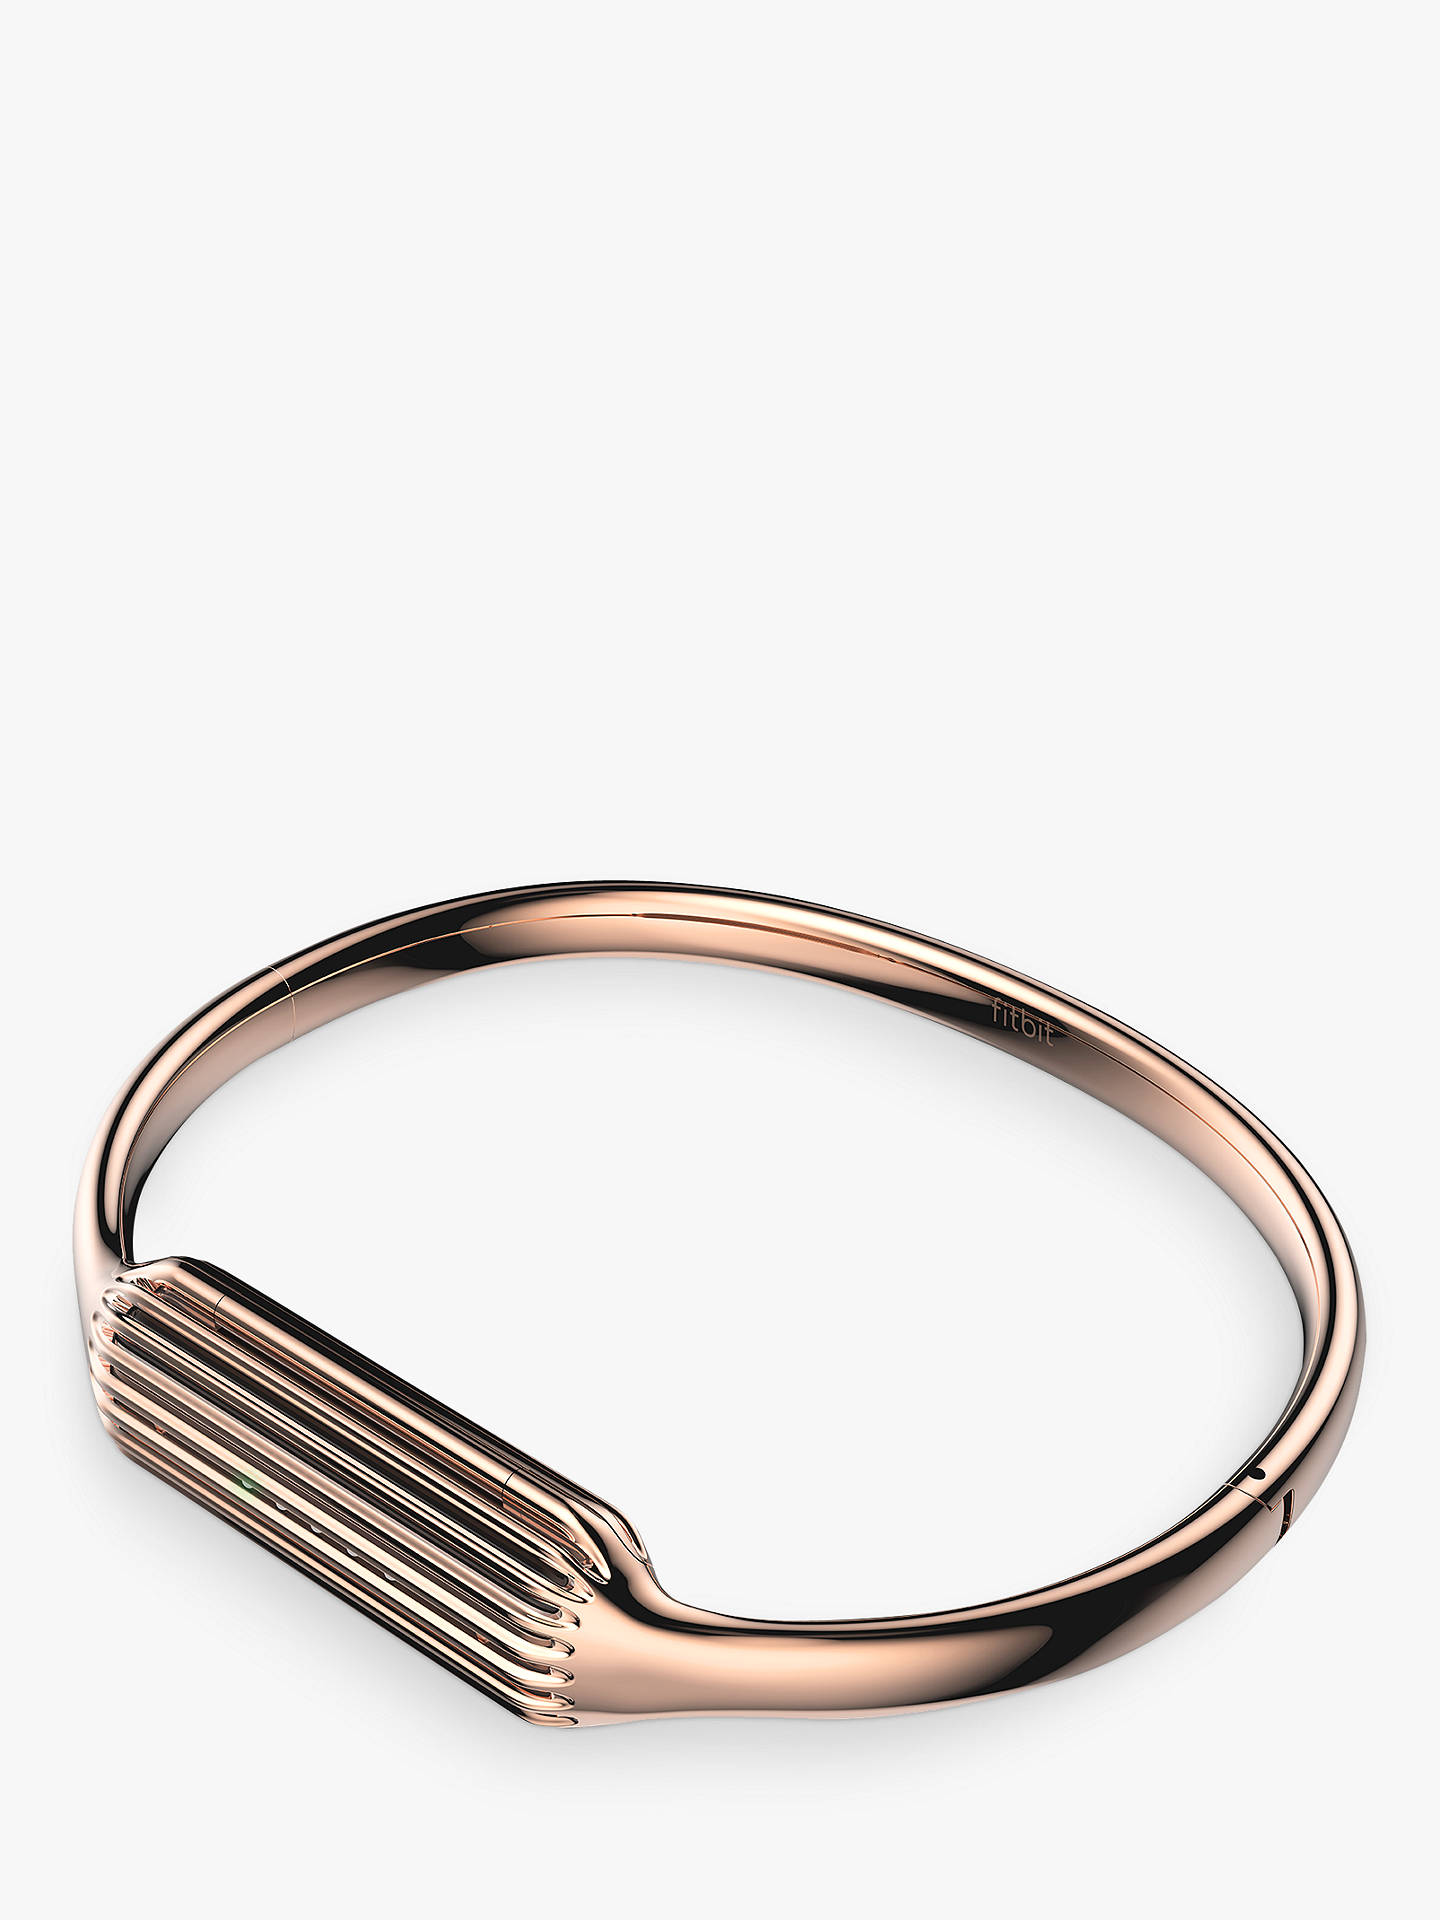 Fitbit Flex 2 Accessory Bangle Small 22k Rose Gold Plated